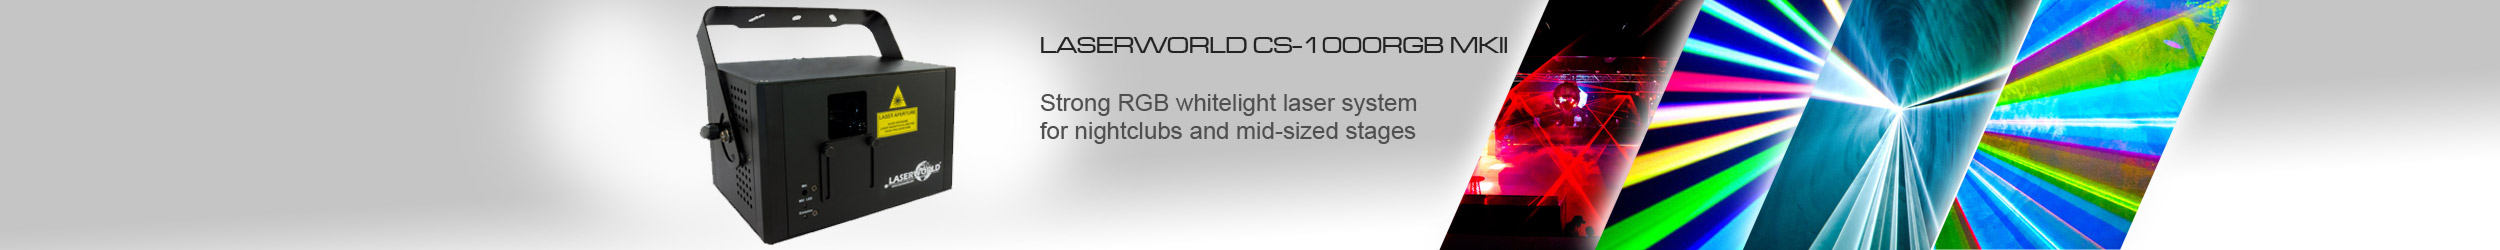 Club Series CS-1000RGB MKII